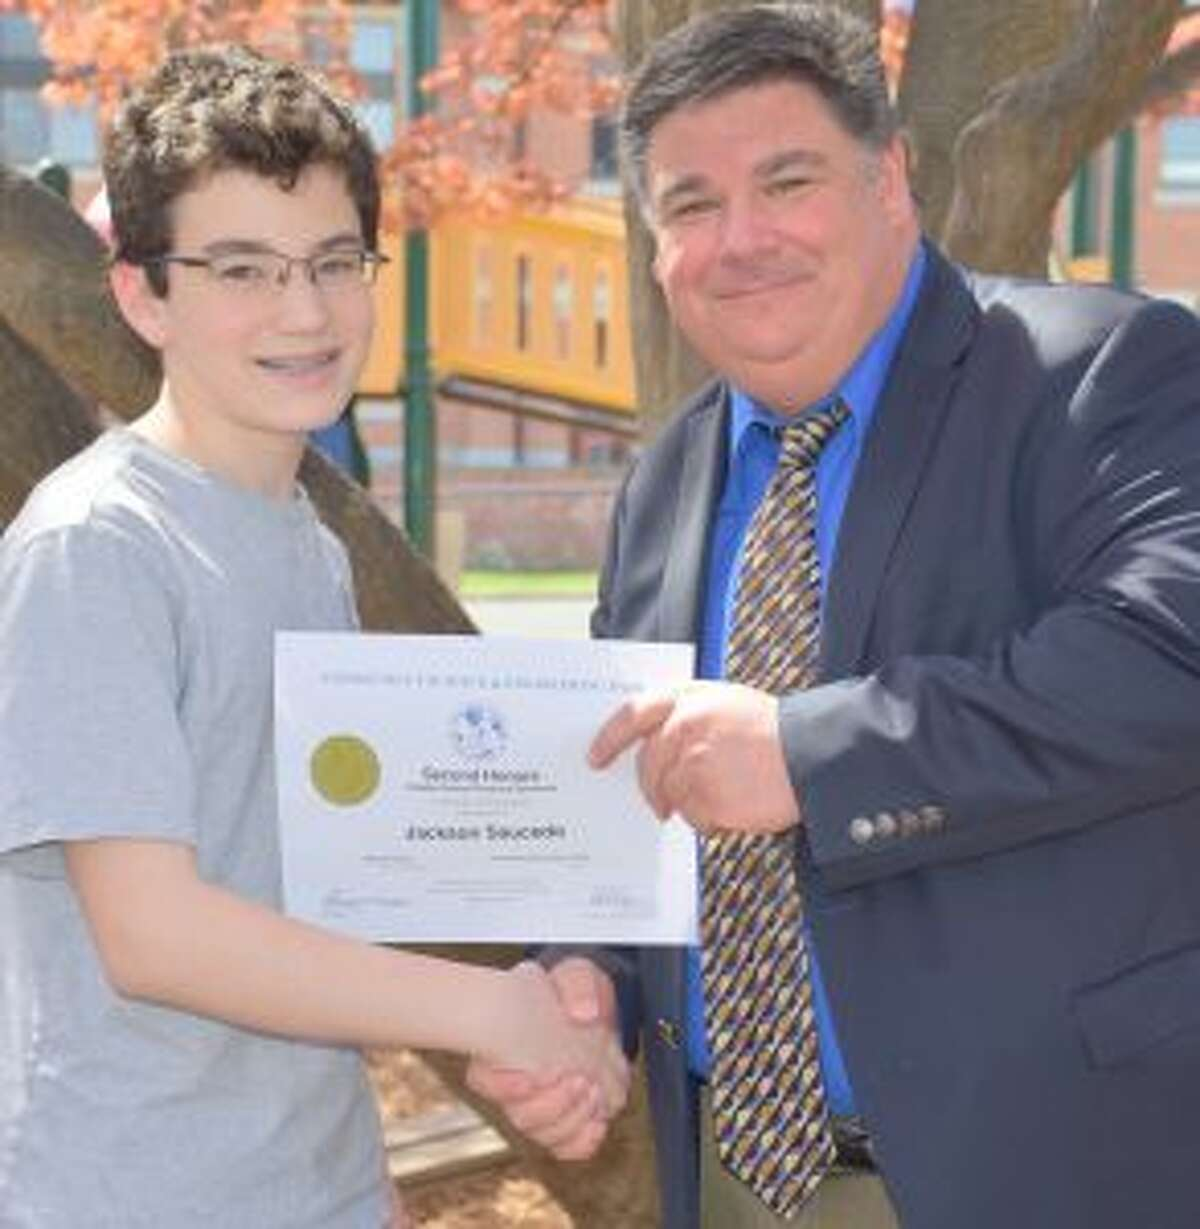 An Odyssey student from St. Aloysius School in New Canaan is heading to the World Championships. Superintendent of Schools Dr. Steven F. Cheeseman awards Jackson Saucedo a certificate of achievement. - Contributed photo